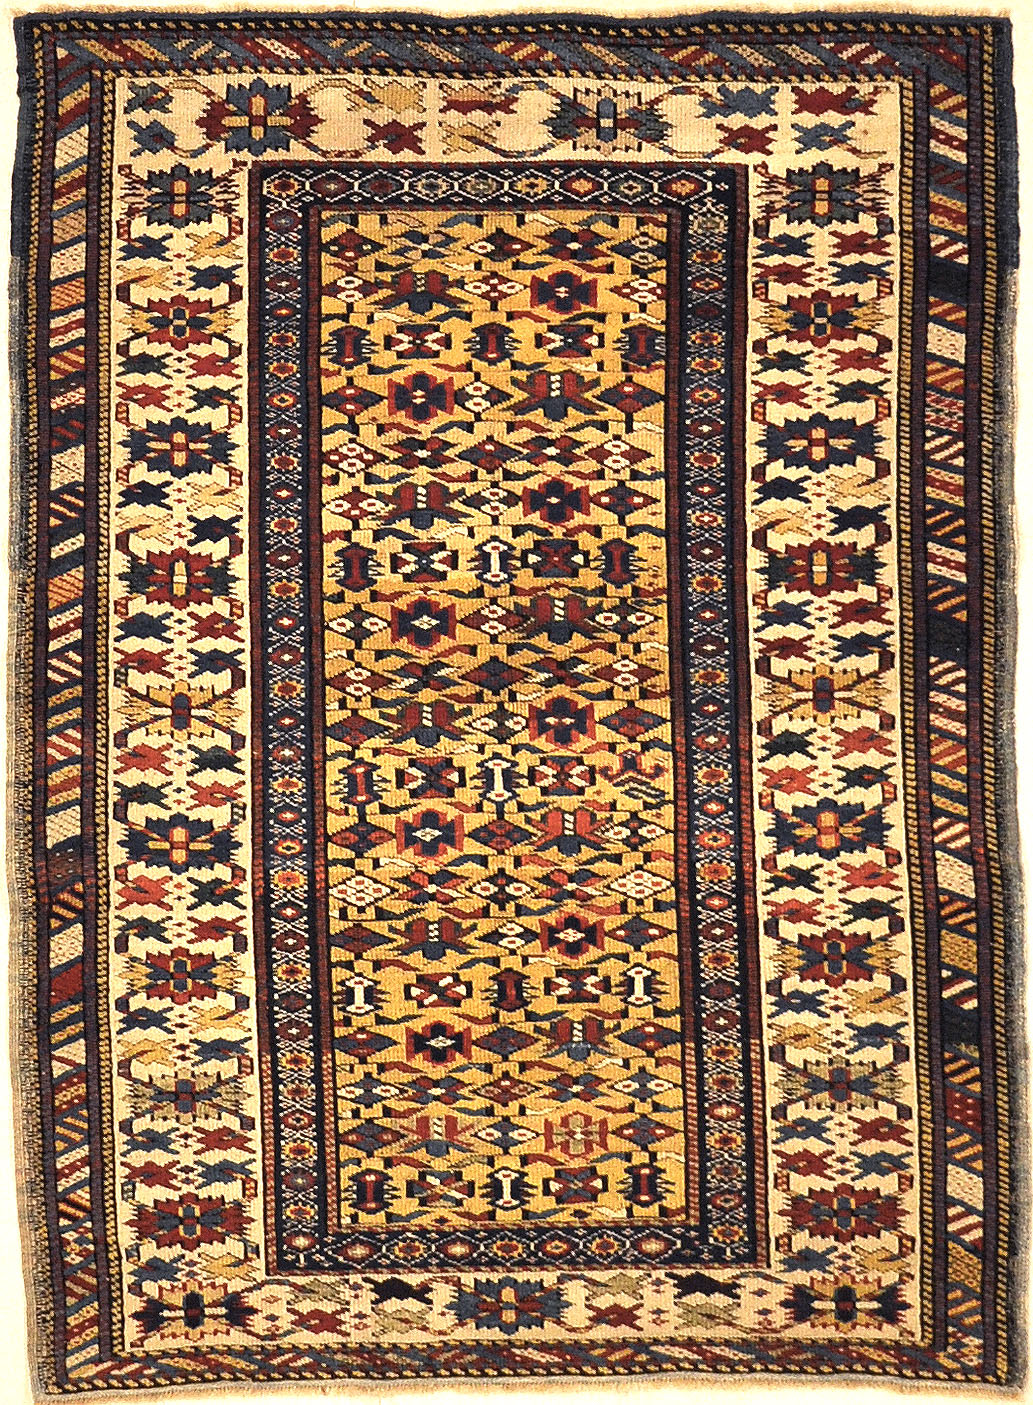 Antique Rare Gold Kuba Chichi Rug. A genuine authentic antique piece of carpet art sold by the Santa Barbara Design Center, Rugs and More.